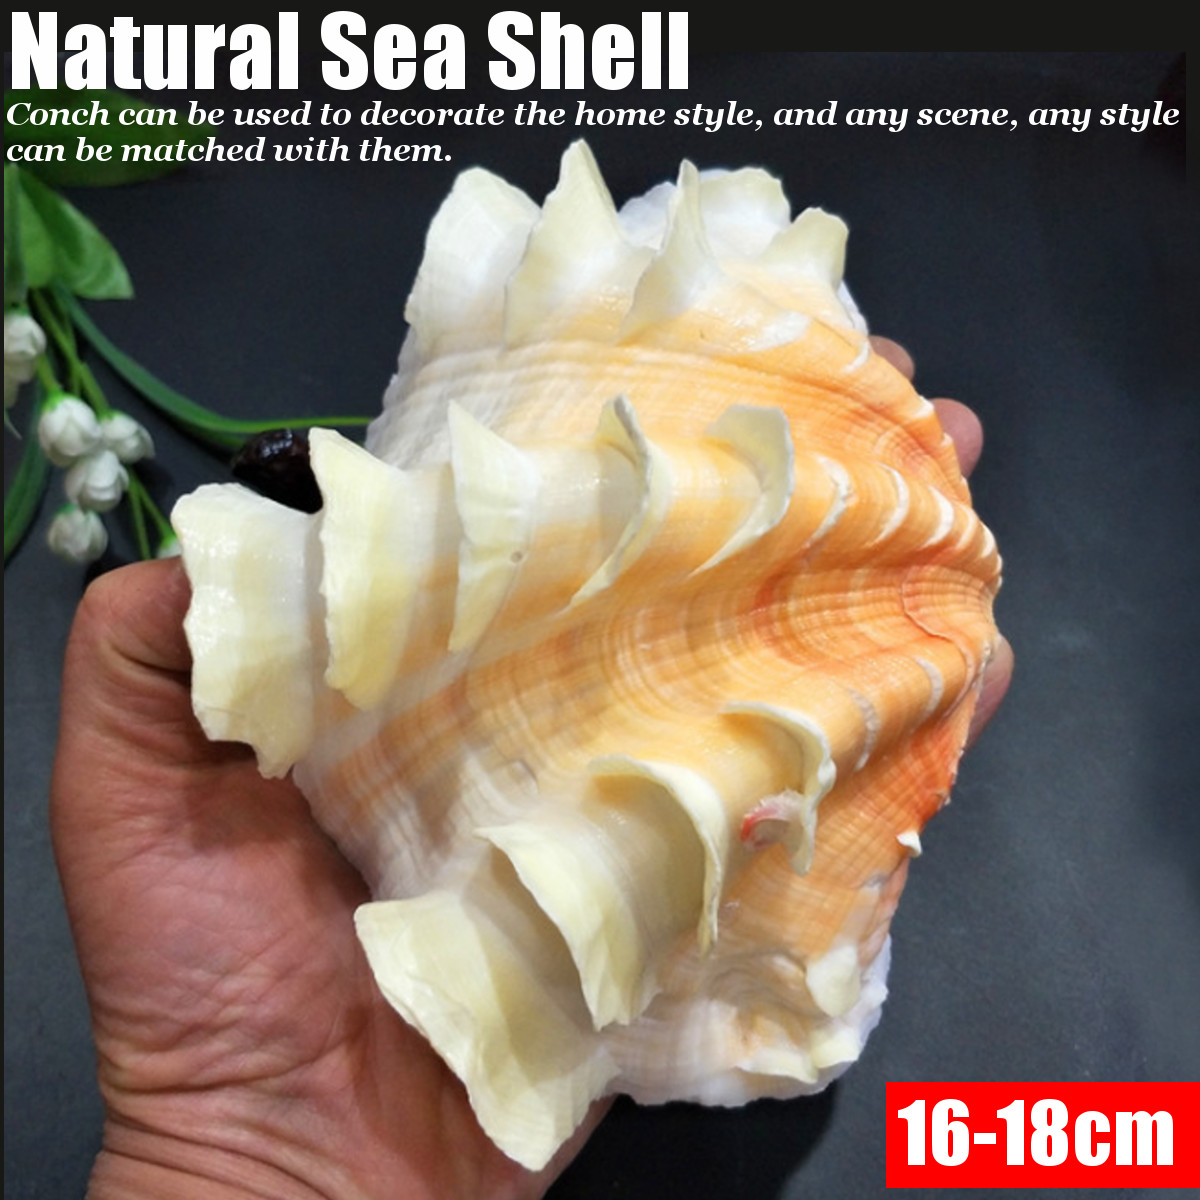 16-18cm Natural Sea Shell Conch Collectible Seashell Home Furnishing Marine Sea Decor Fish Tank Accessories Aquarium Decoration